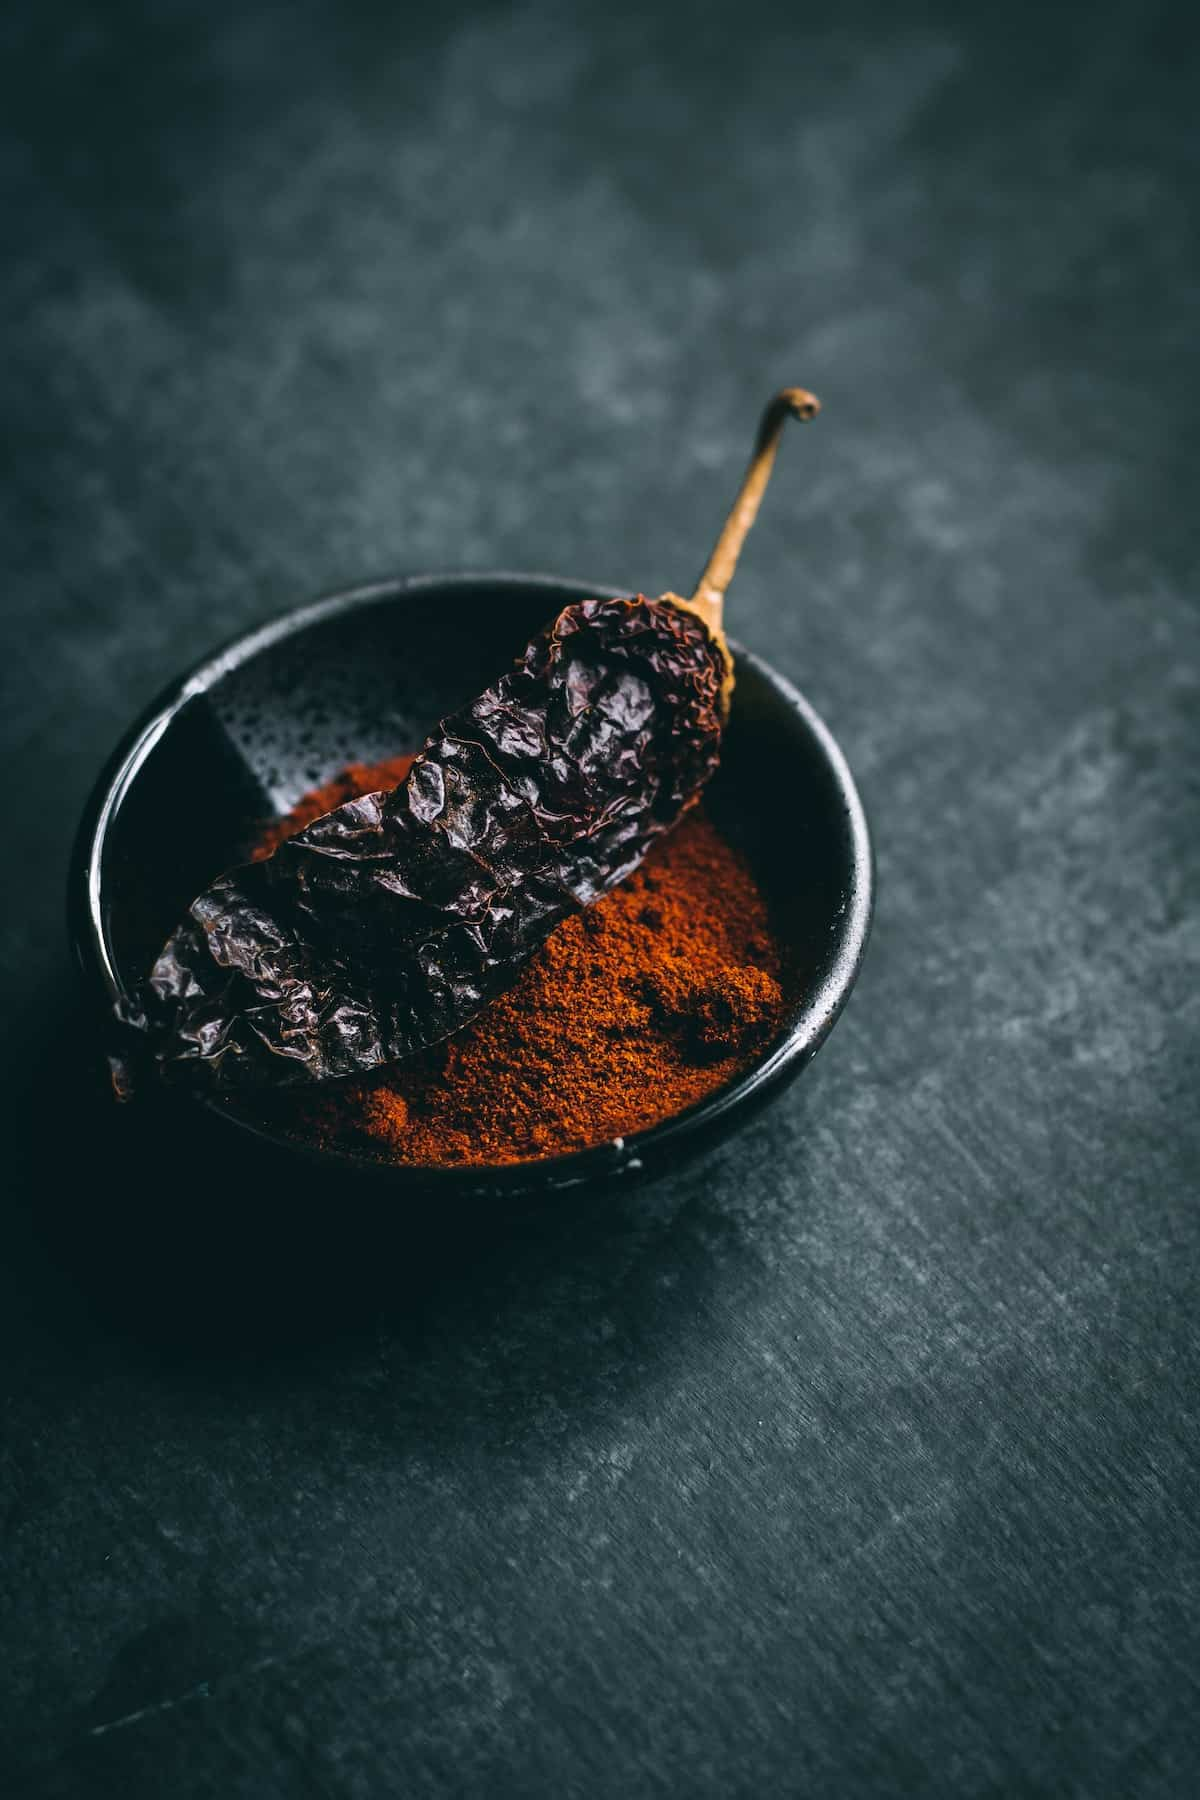 Shot of paprika and a dried pepper against a dark background.